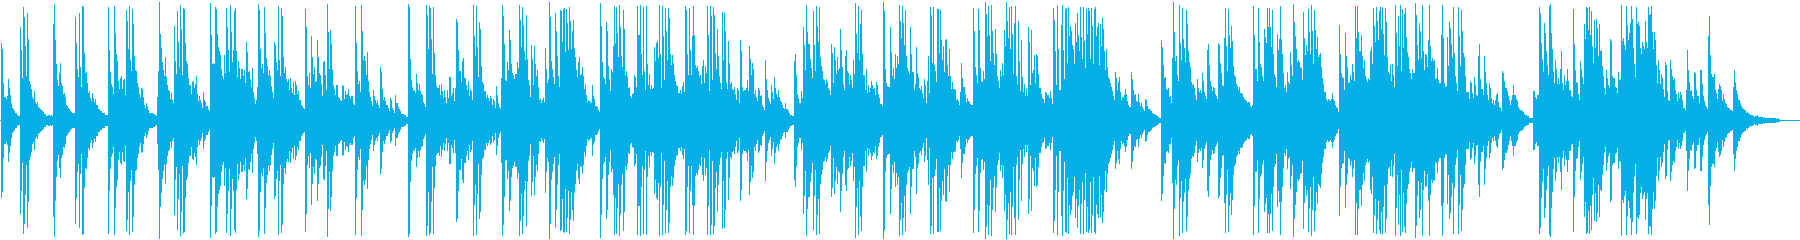 Bright and painful piano ballad's reproduced waveform